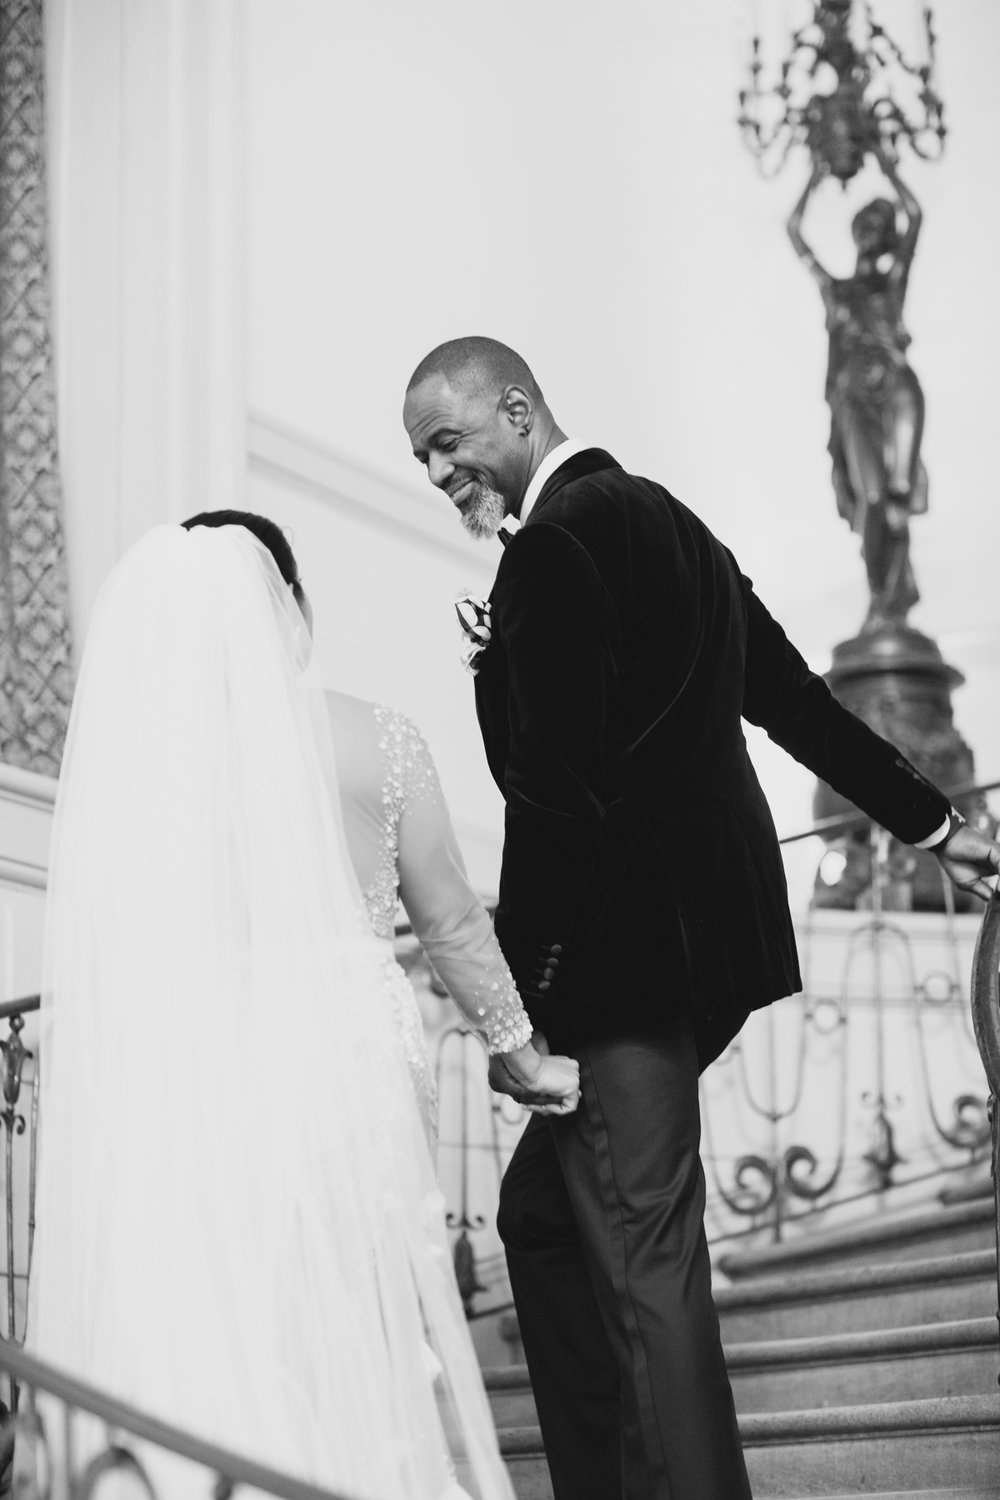 Brian-McKnight-oheka-castle-wedding-92.jpg